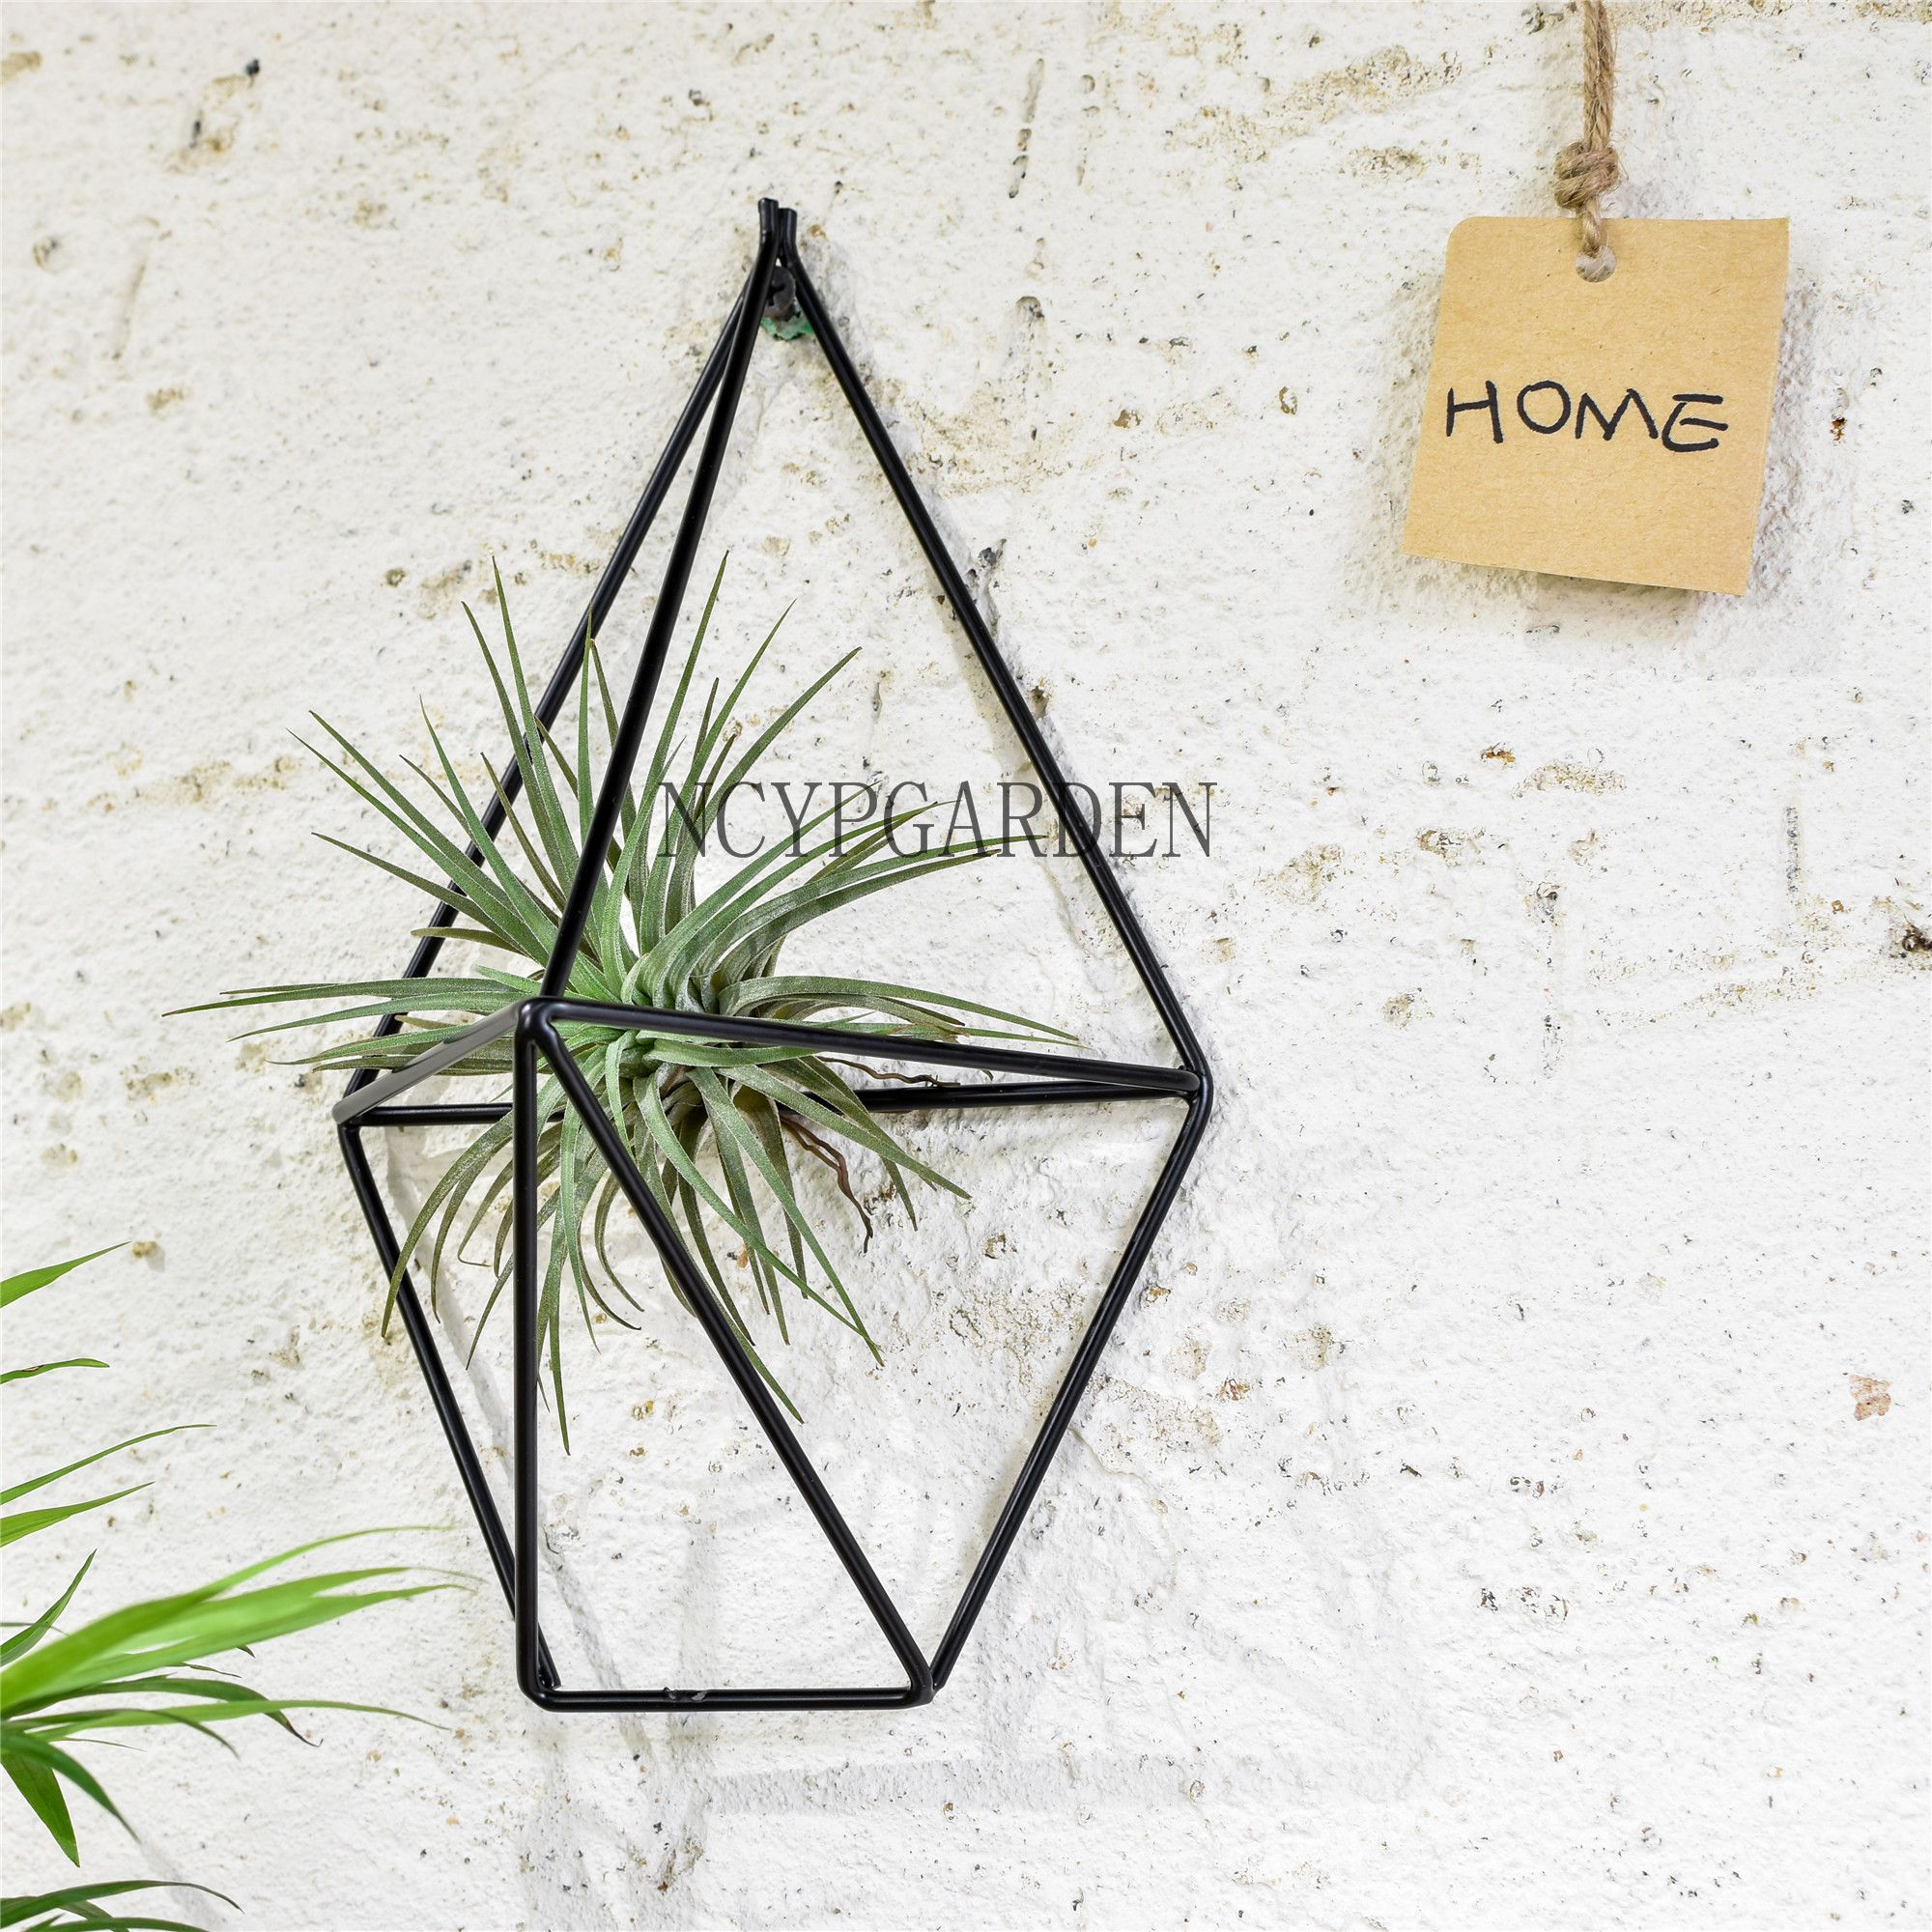 Accent Air Wall Controller Manual: Rustic Wall Mount Hanging Irregular Pentagon Geometric